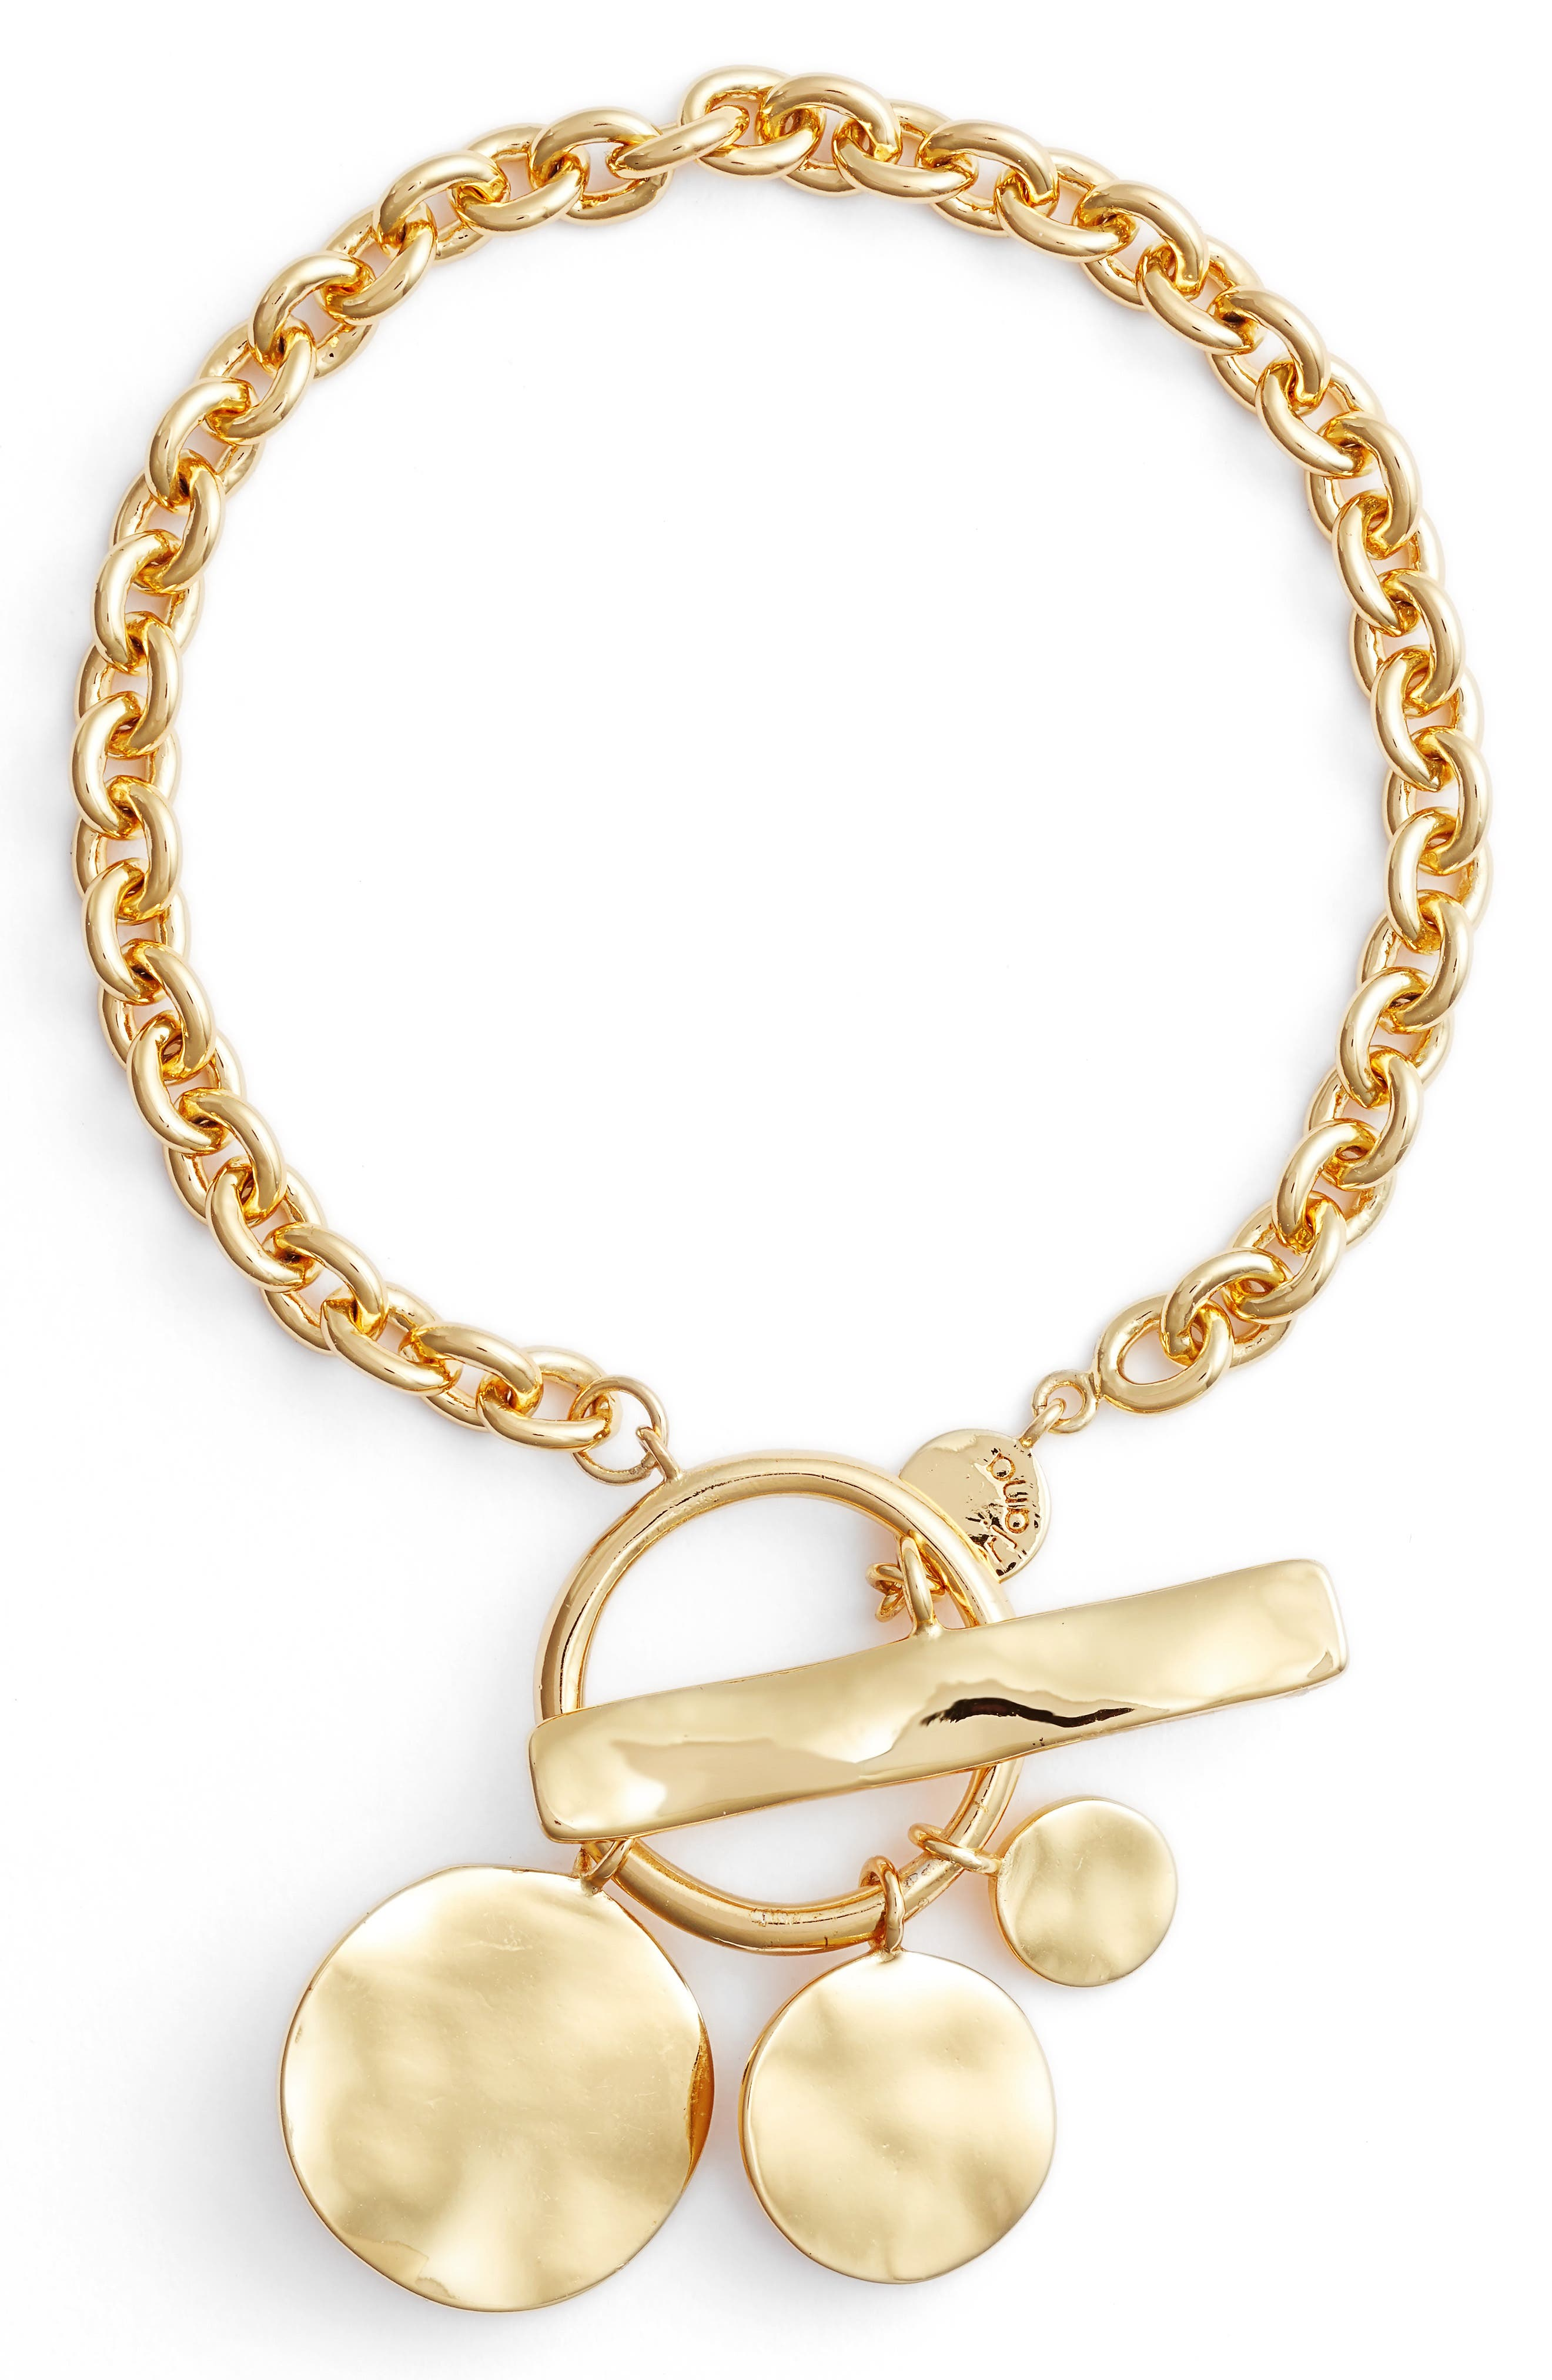 Chloe Hammered Disc Toggle Bracelet,                             Main thumbnail 1, color,                             Gold